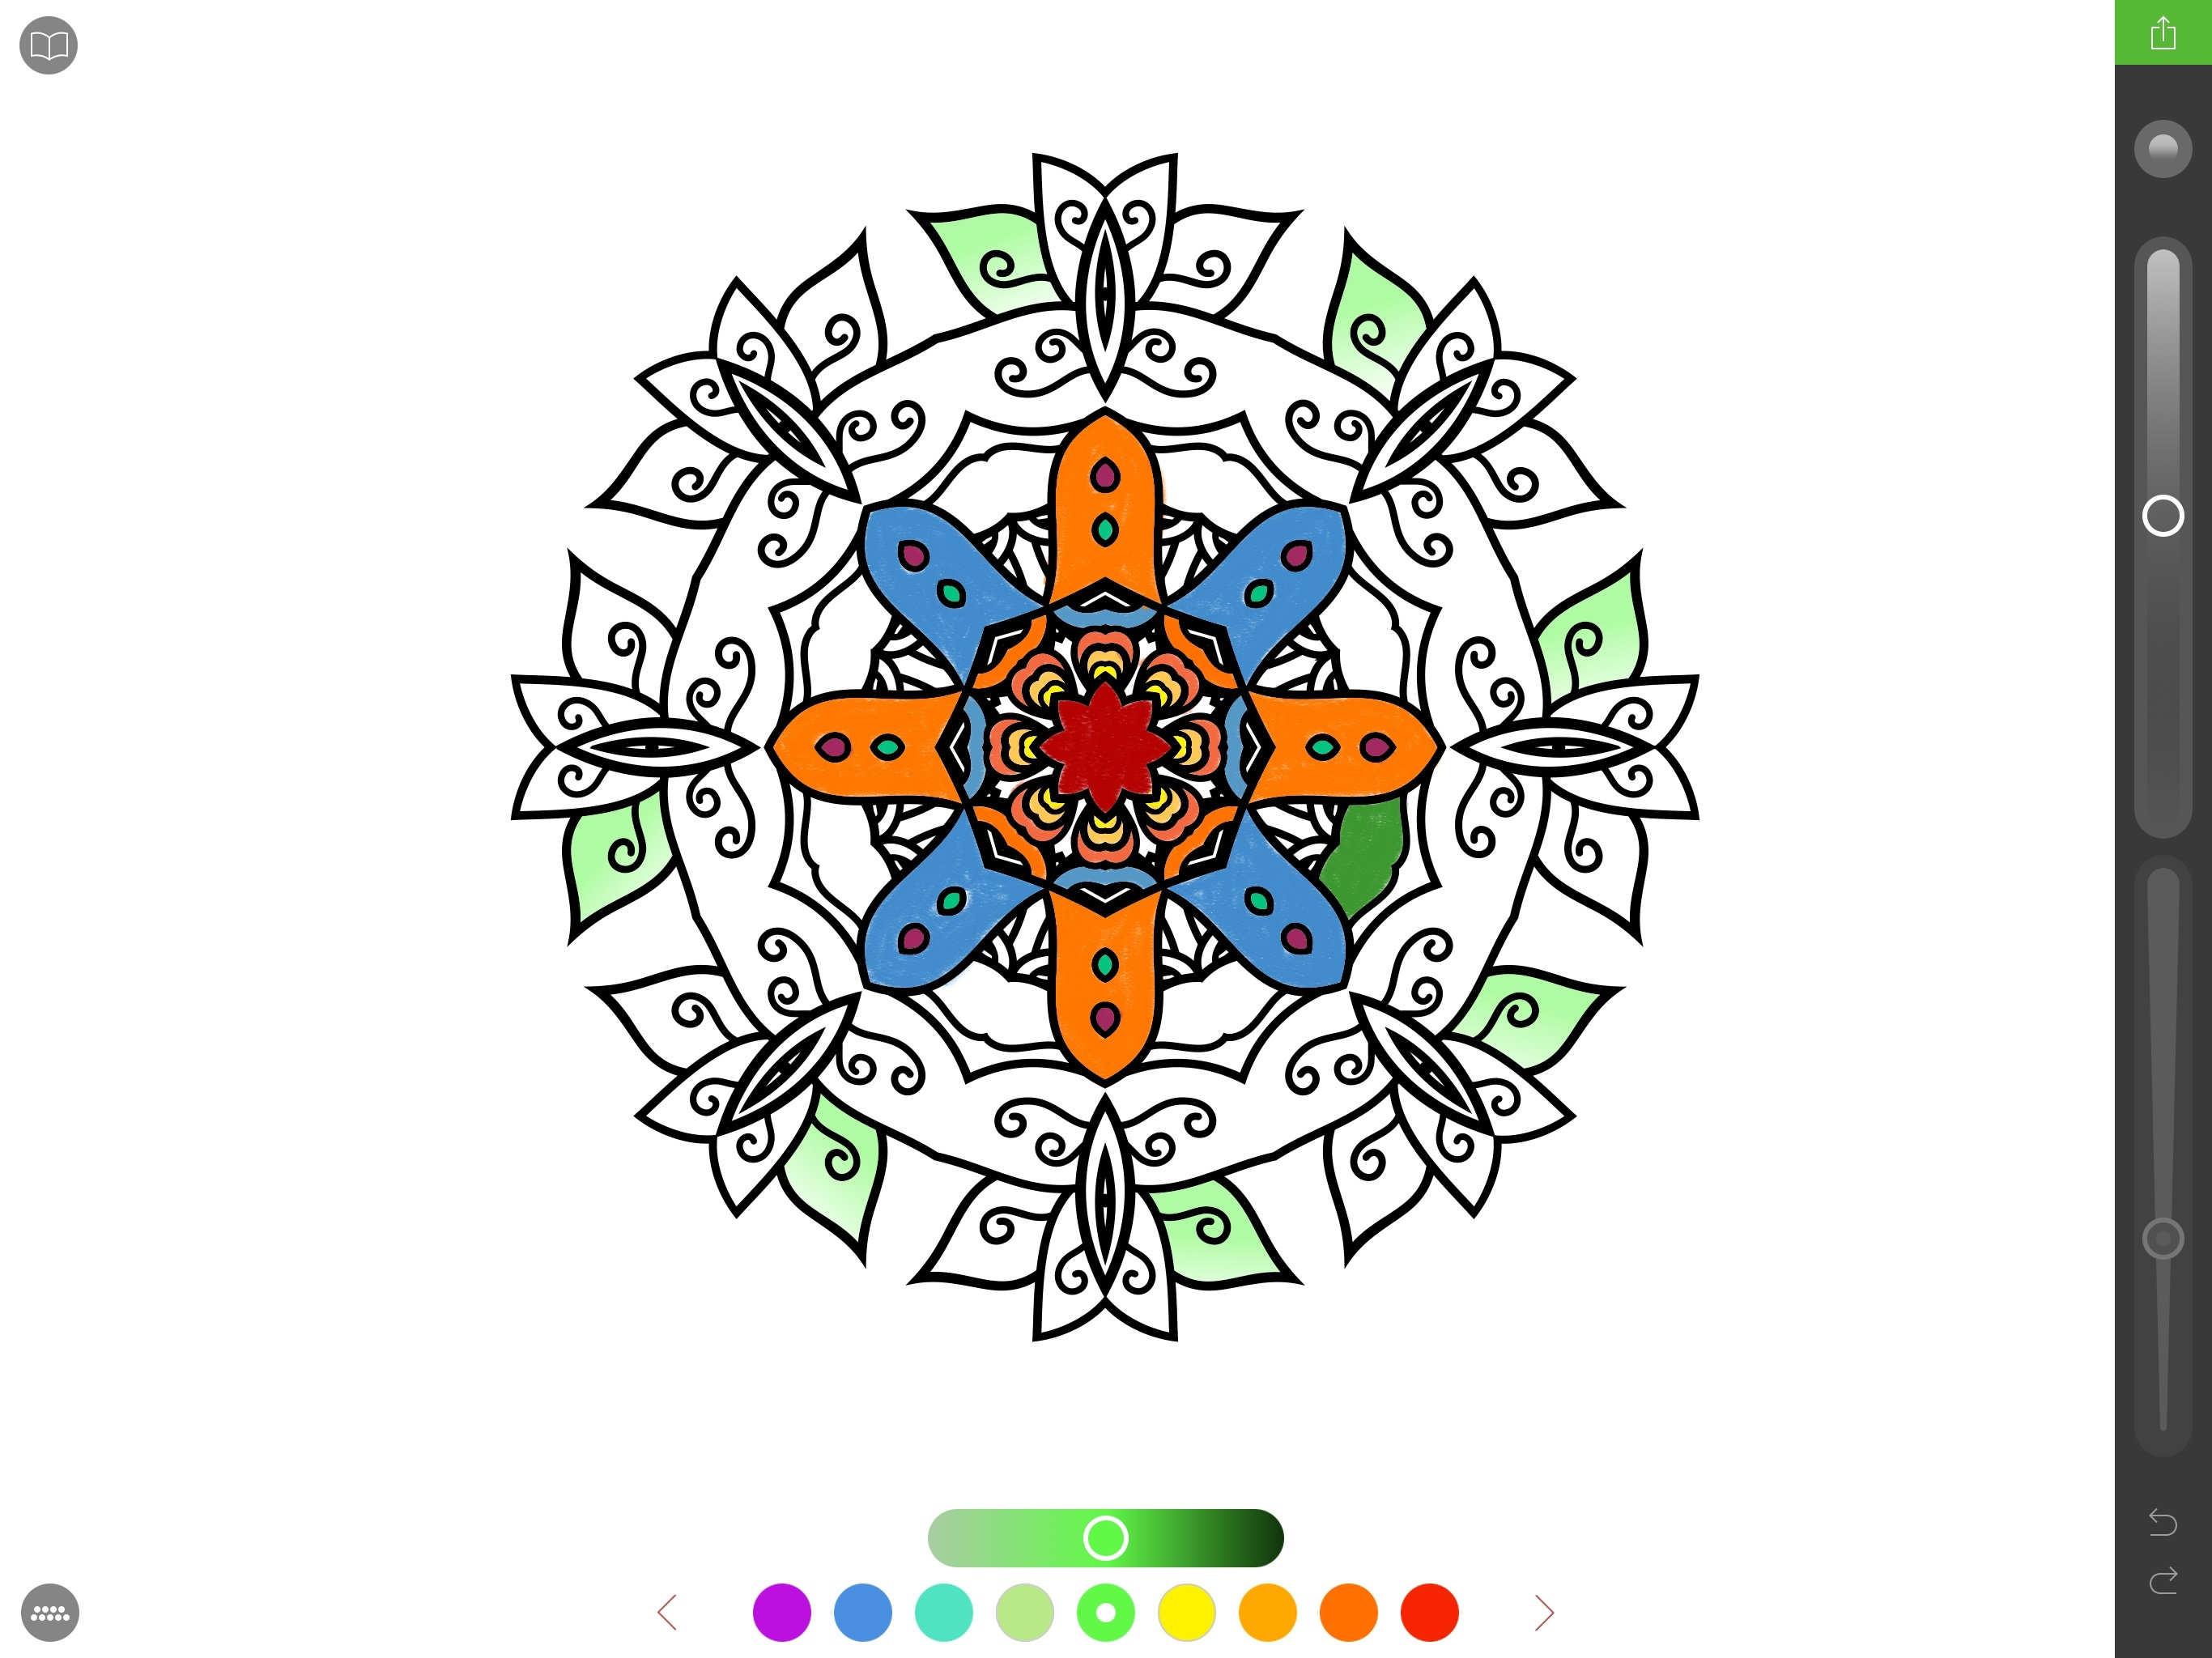 Zen coloring books for adults app - I First Heard Of The Adult Coloring Book Trend From My Friend Myke Who Described On Various Podcasts And Slack Conversations How Coloring Mandala Like